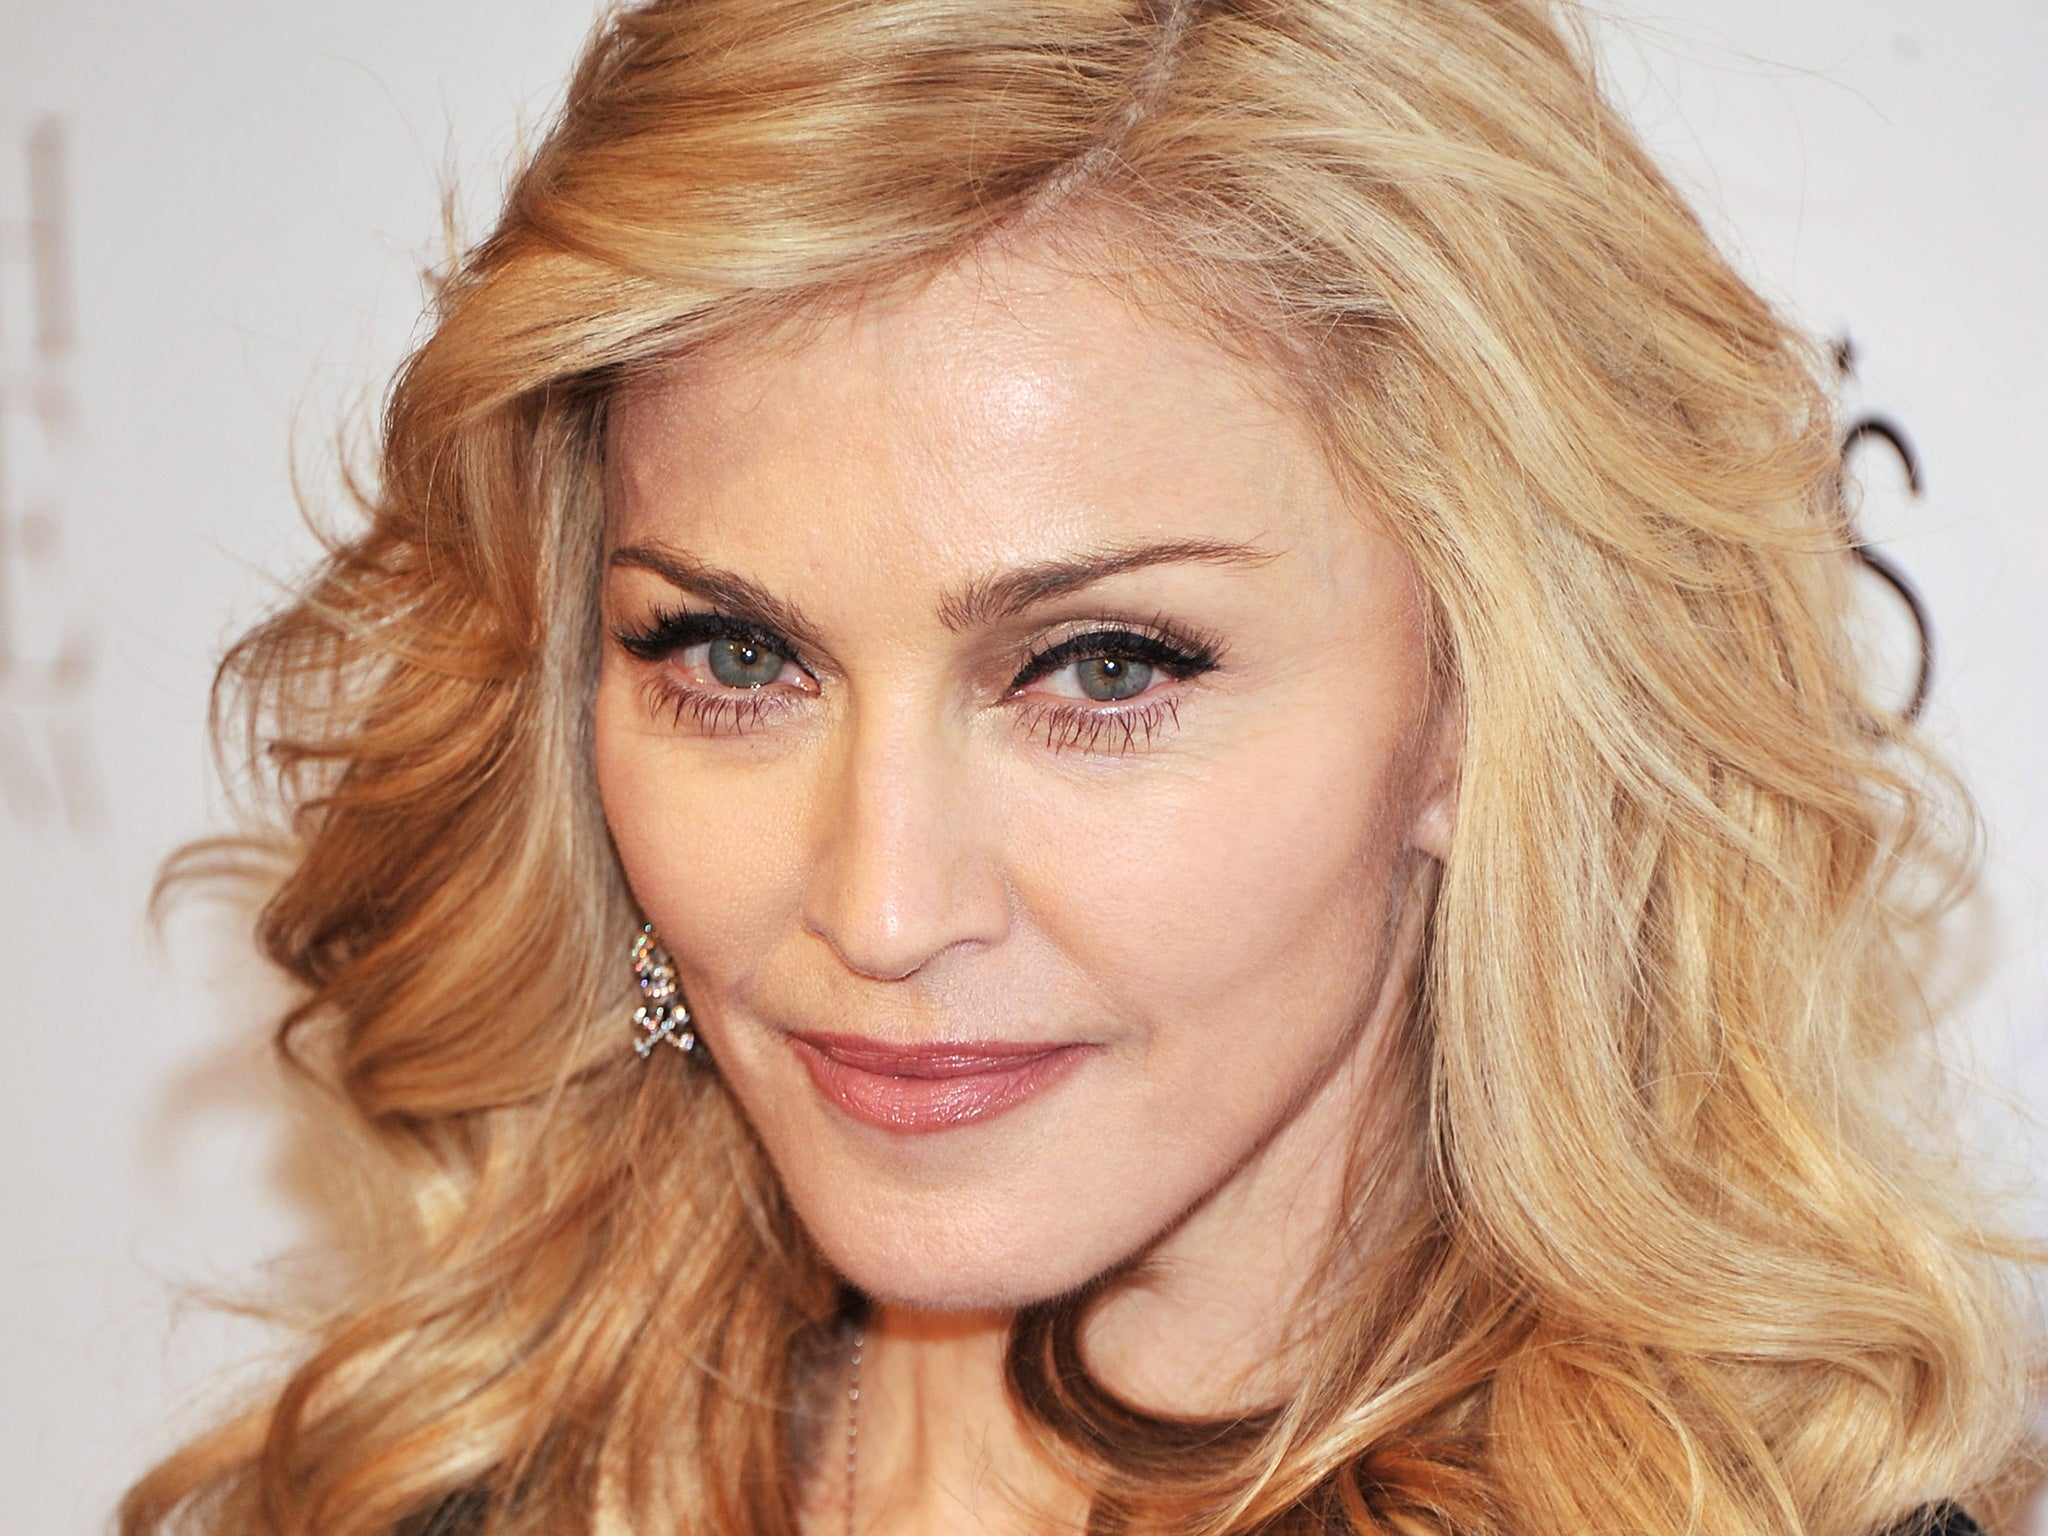 Madonna banned from Texas radio station after White House remarks ...